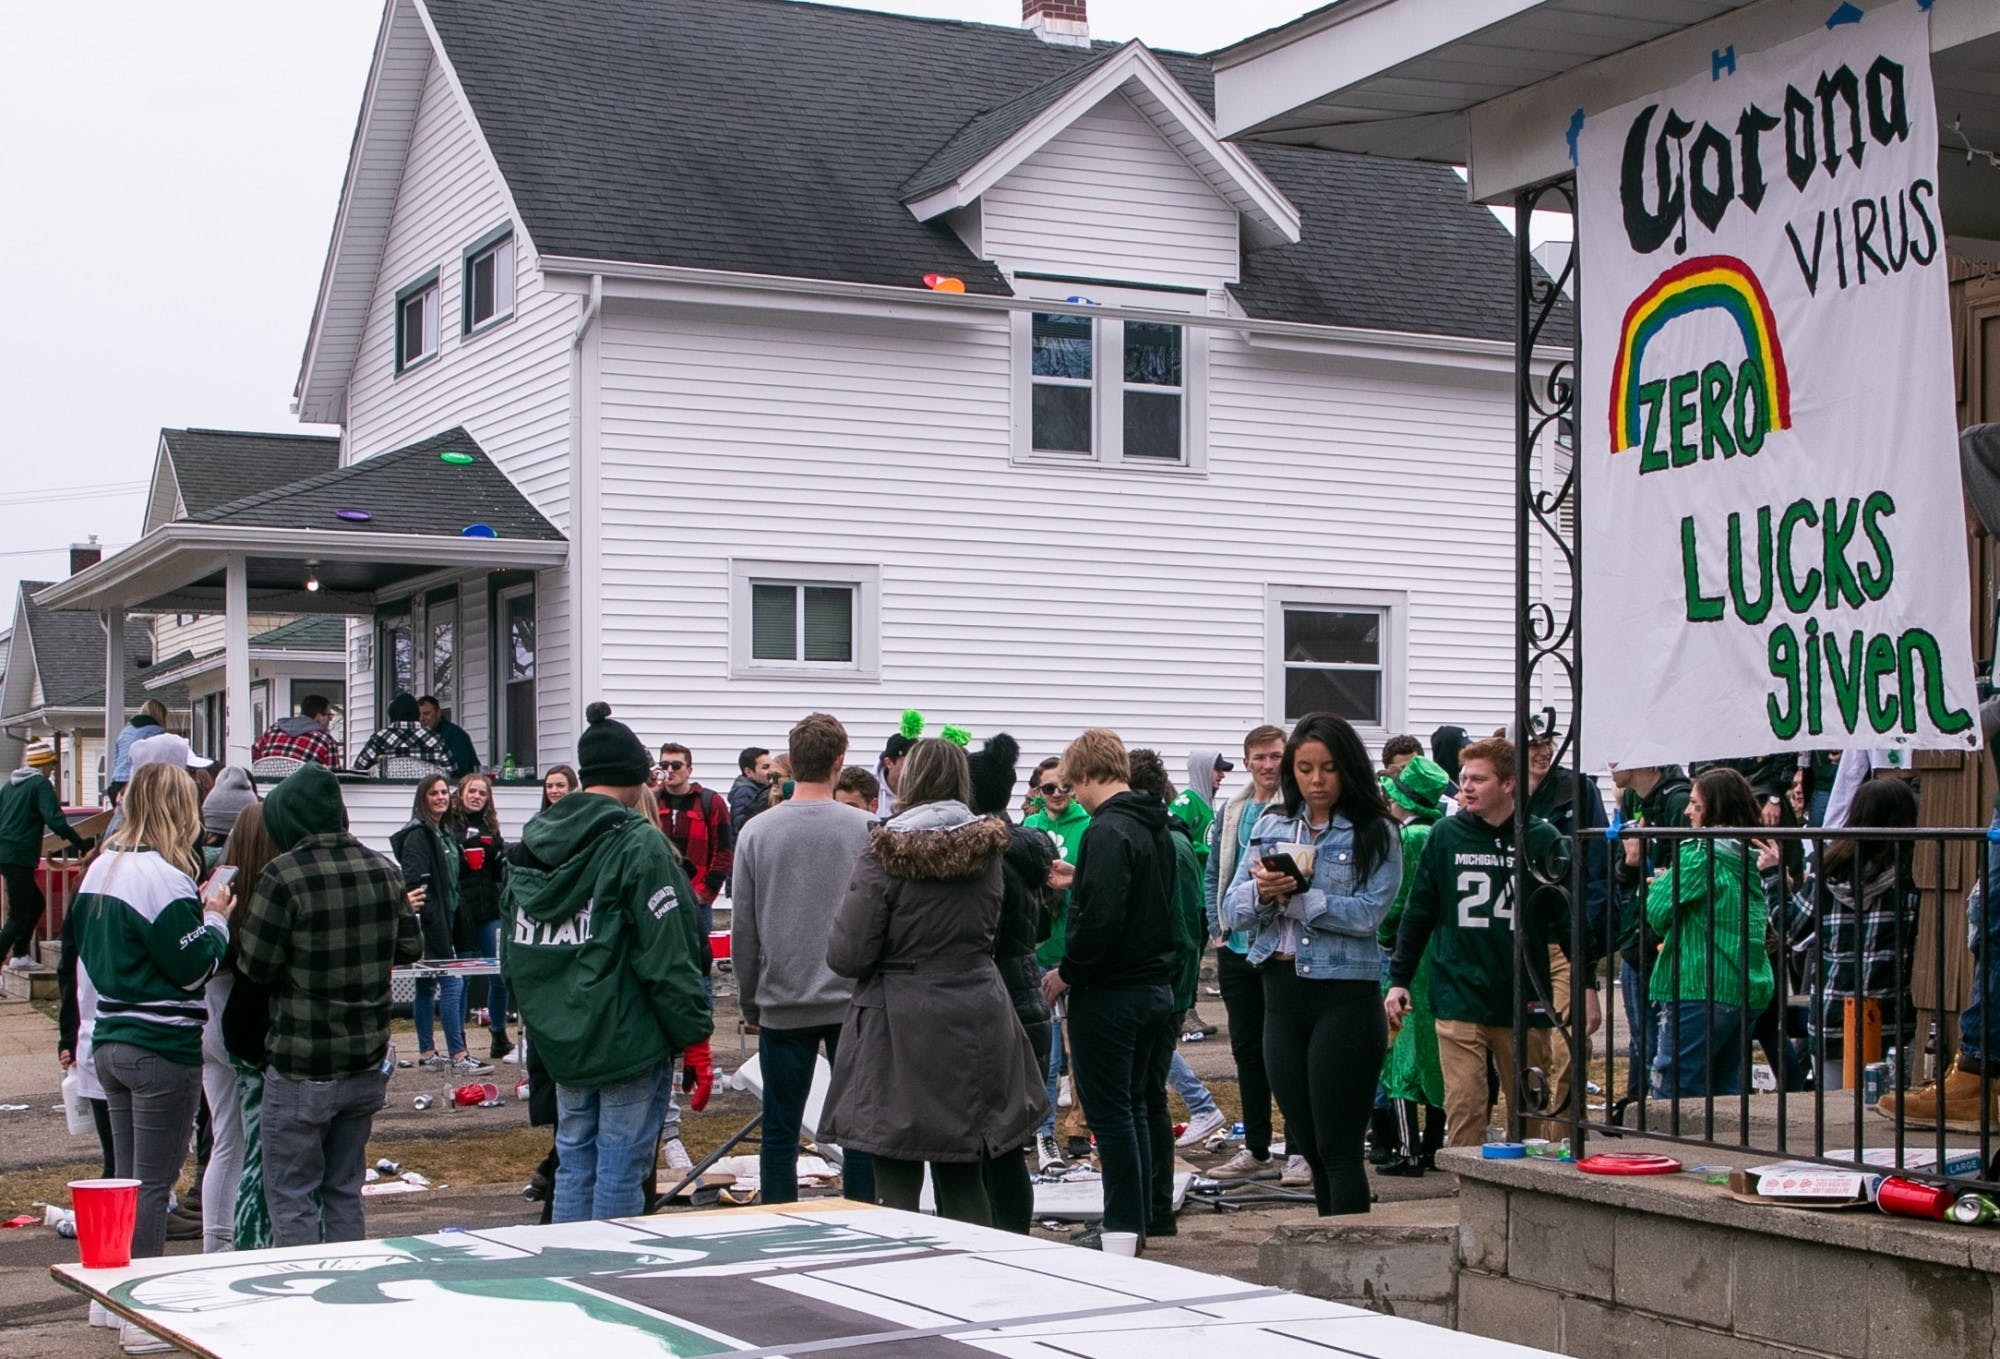 A large group of students, most wearing green clothing, gather in a yard in front of a two-story house. A sign hangs from a house in the foreground that reads, 'Corona virus zero lucks given.'